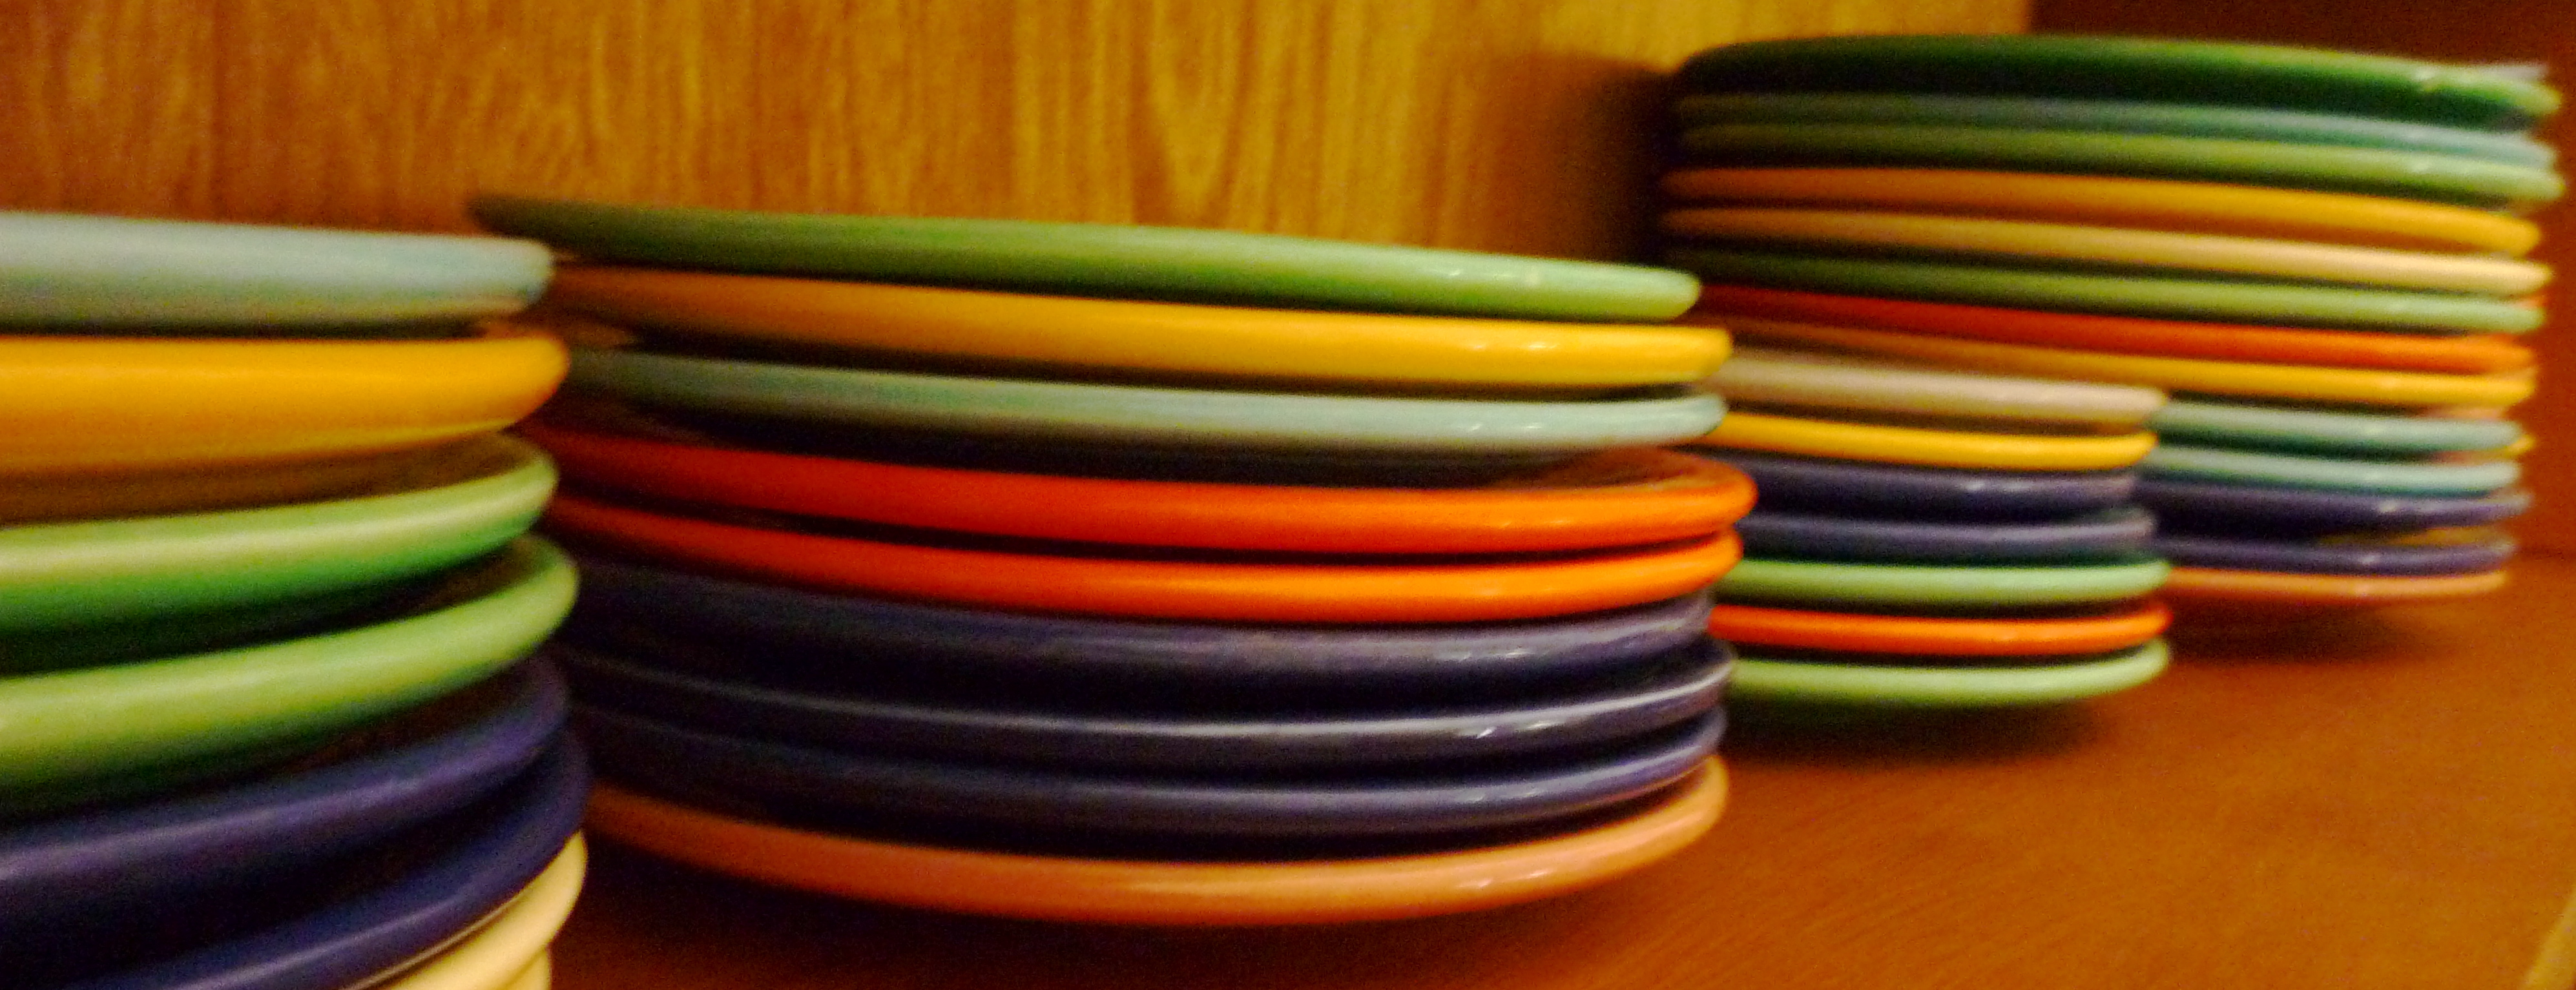 Colorful Plate By Fiestaware For Dinnerware Ideas